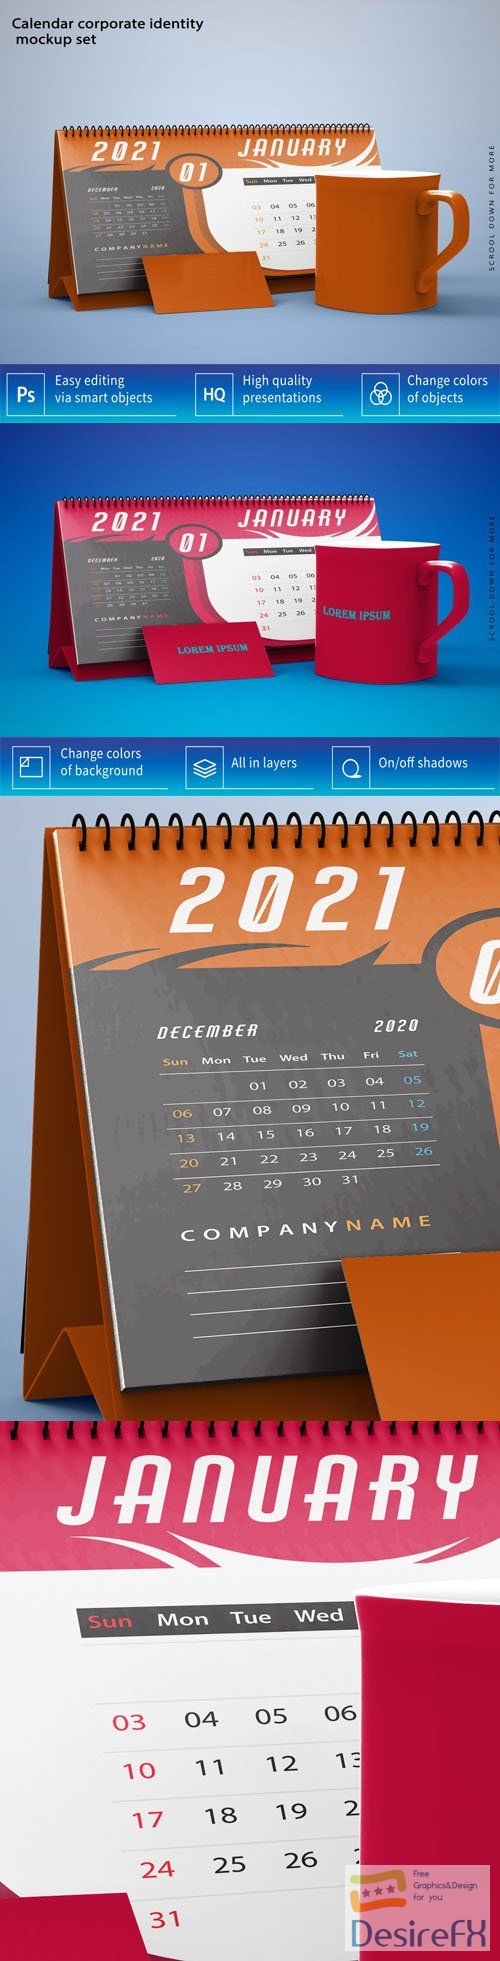 2021 Desktop Calendar Corporate Identity PSD Mockup Template